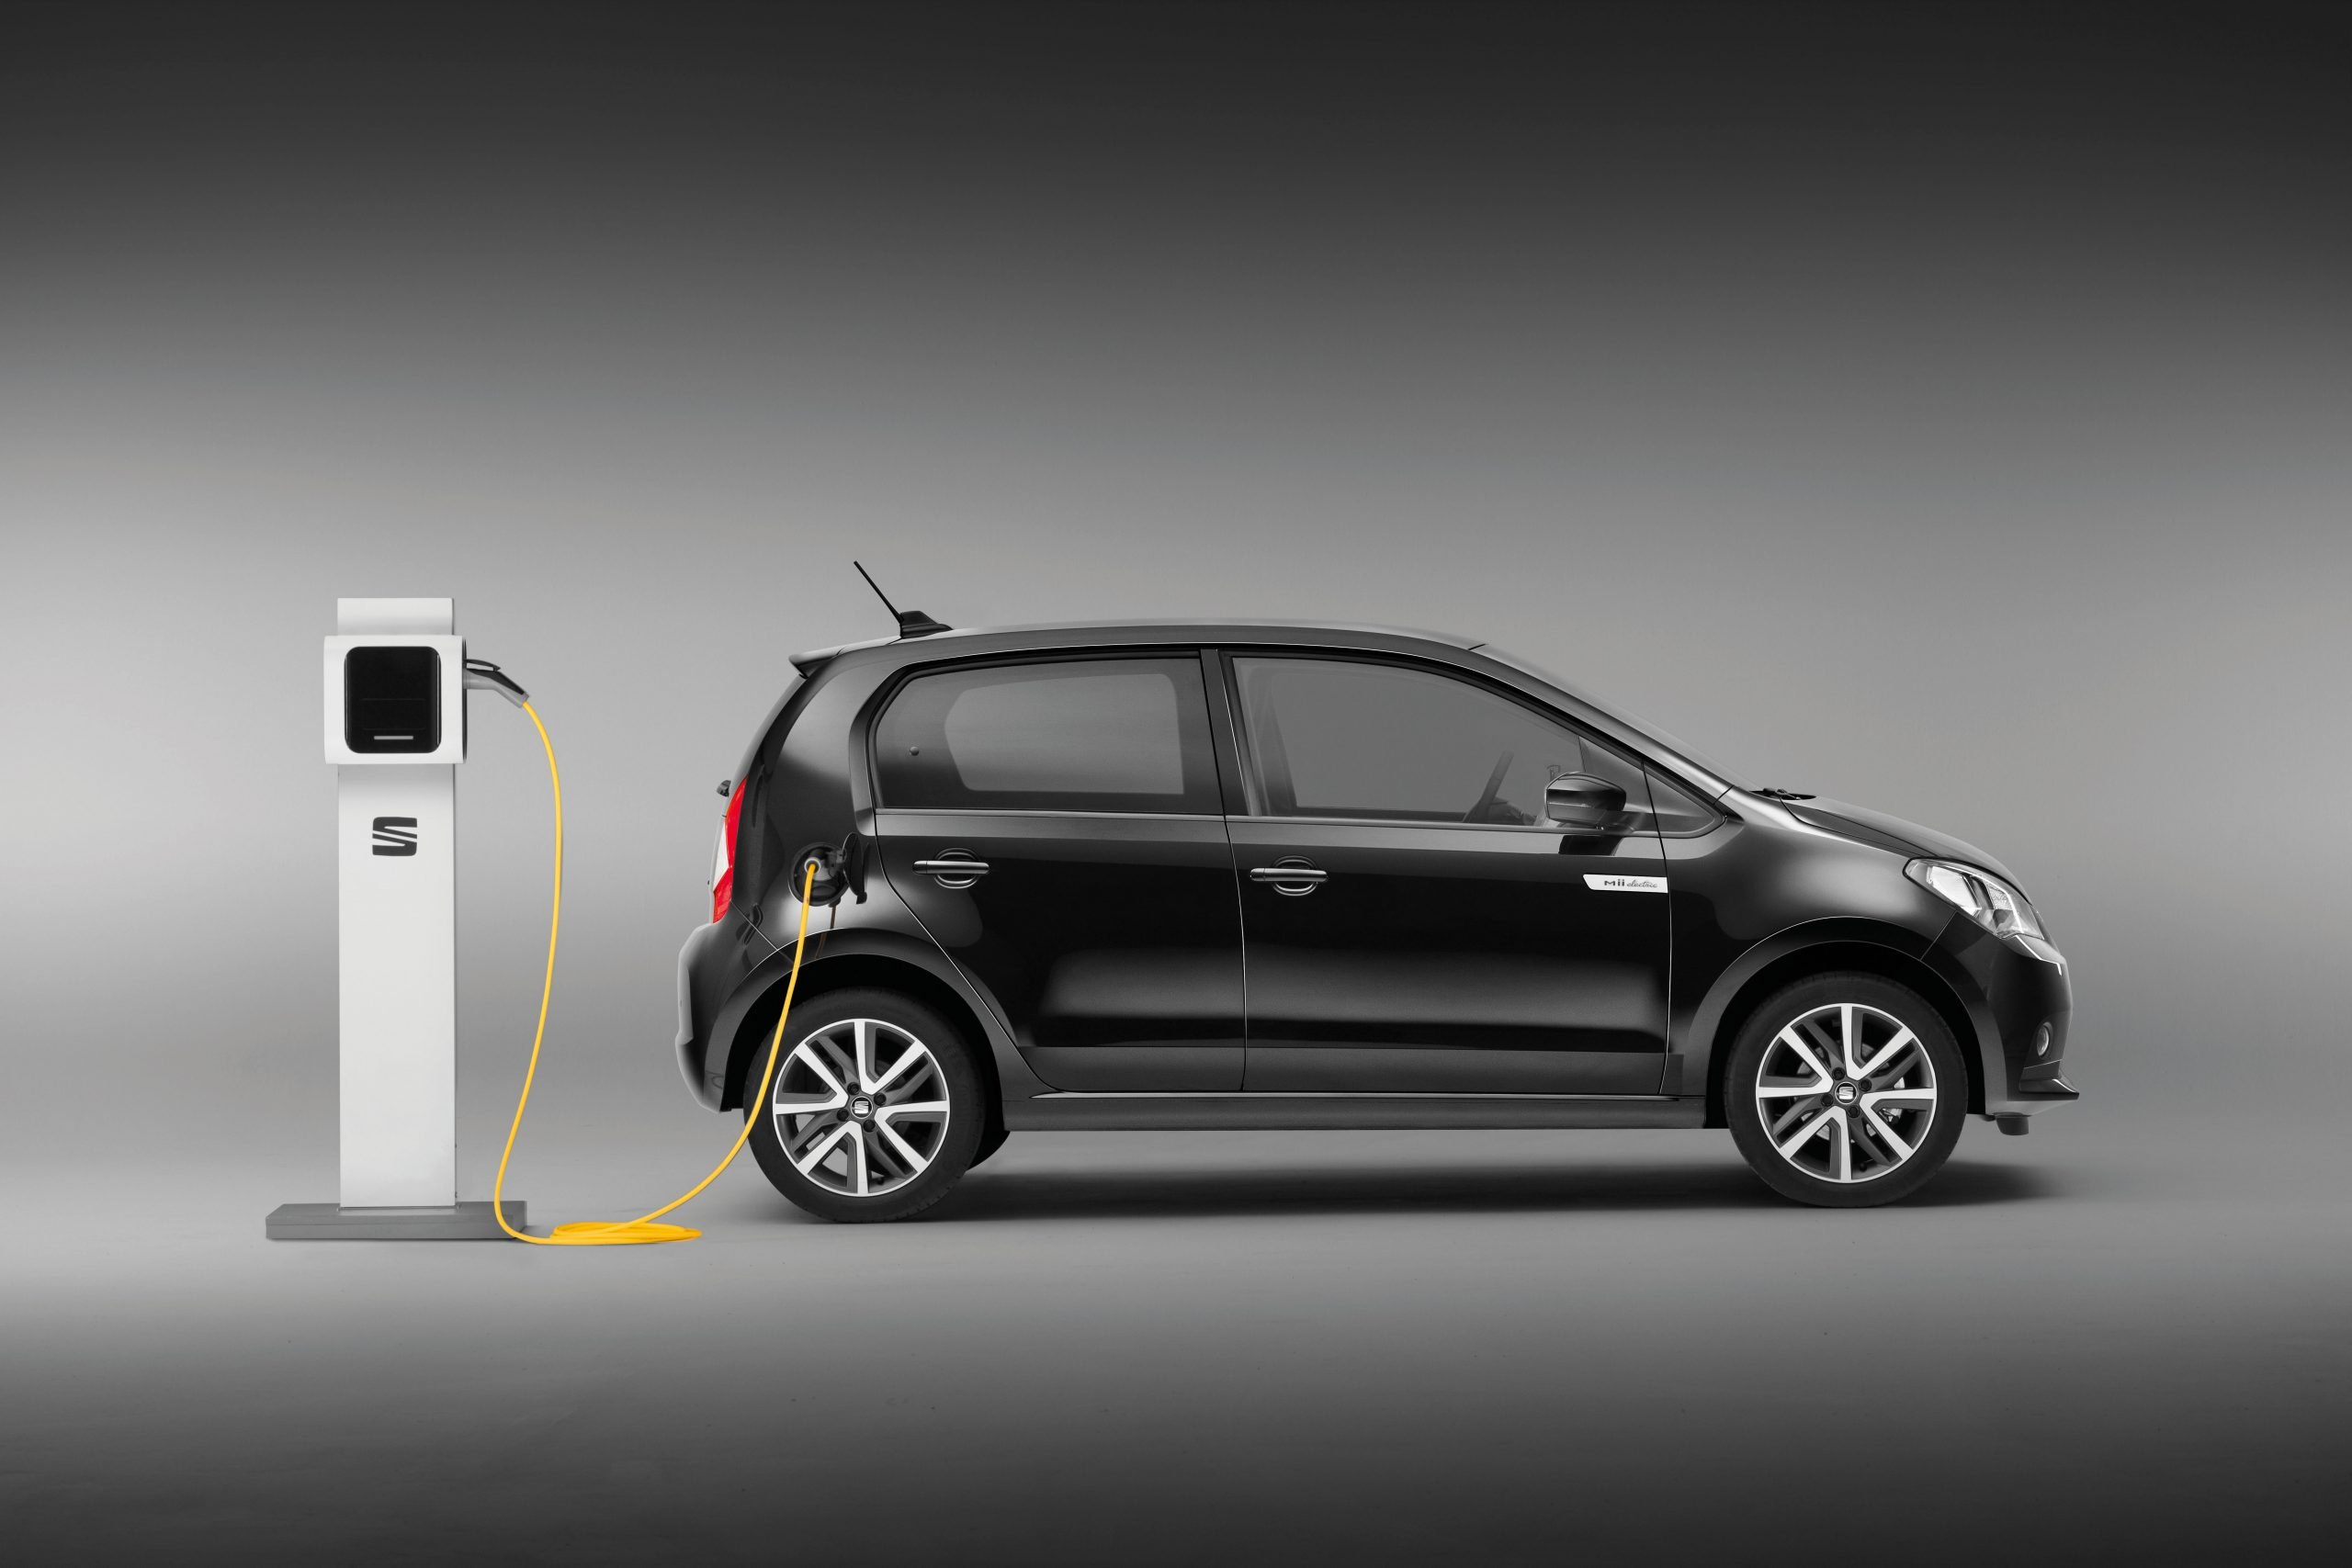 Seat Mii Electric, in black, charging at an electric car charging point